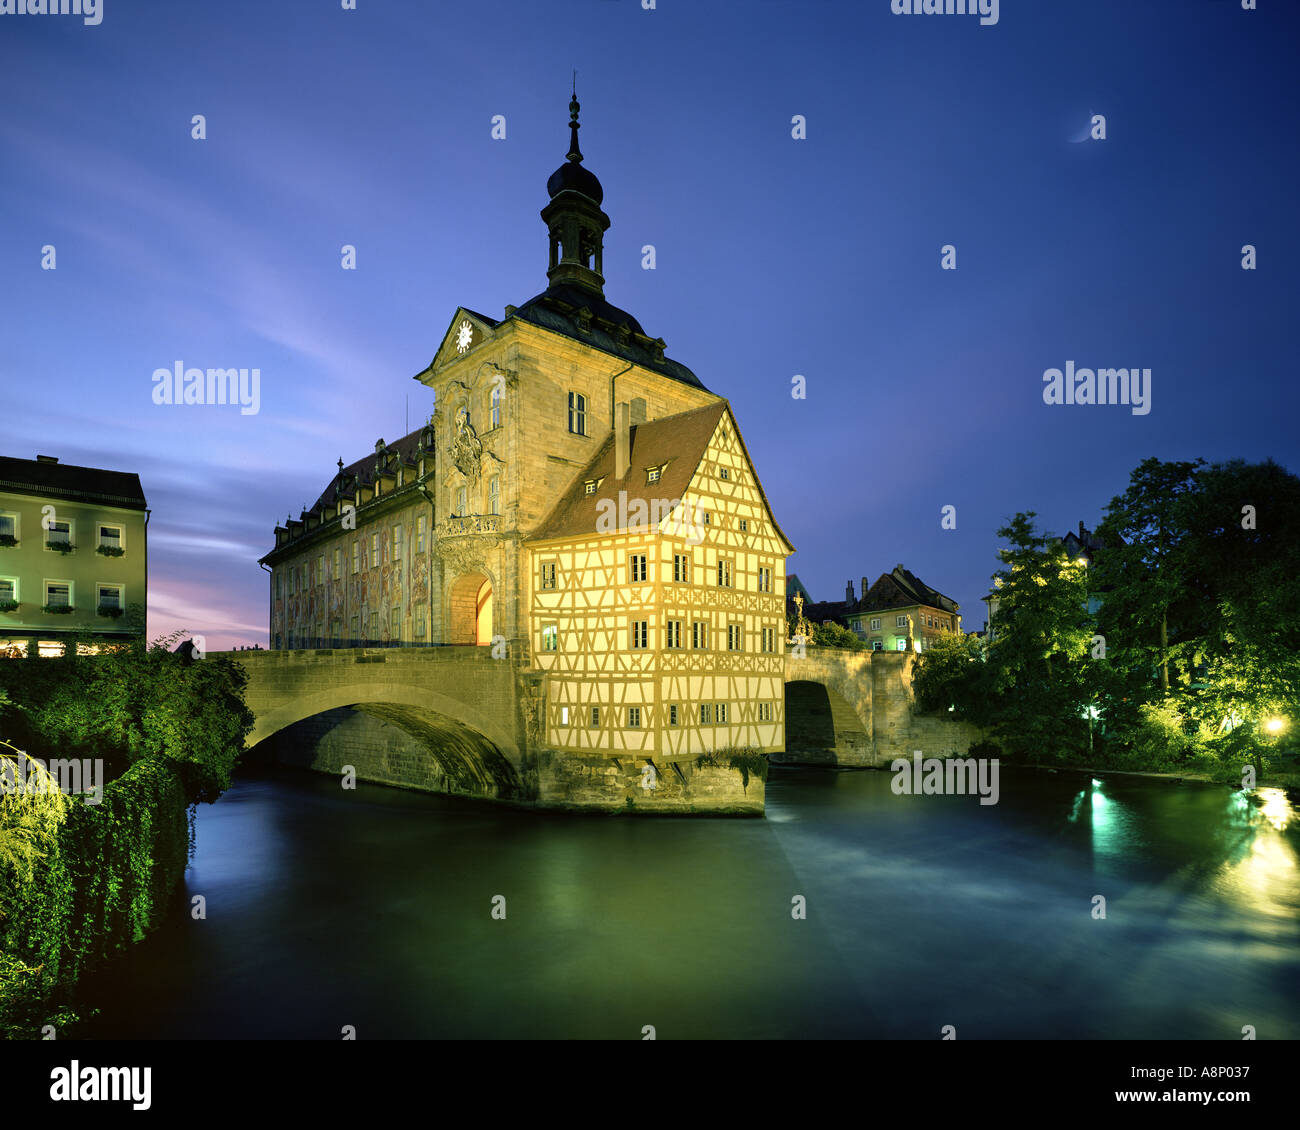 DE - BAVARIA: 'Altes Rathaus' in Bamberg - Stock Image